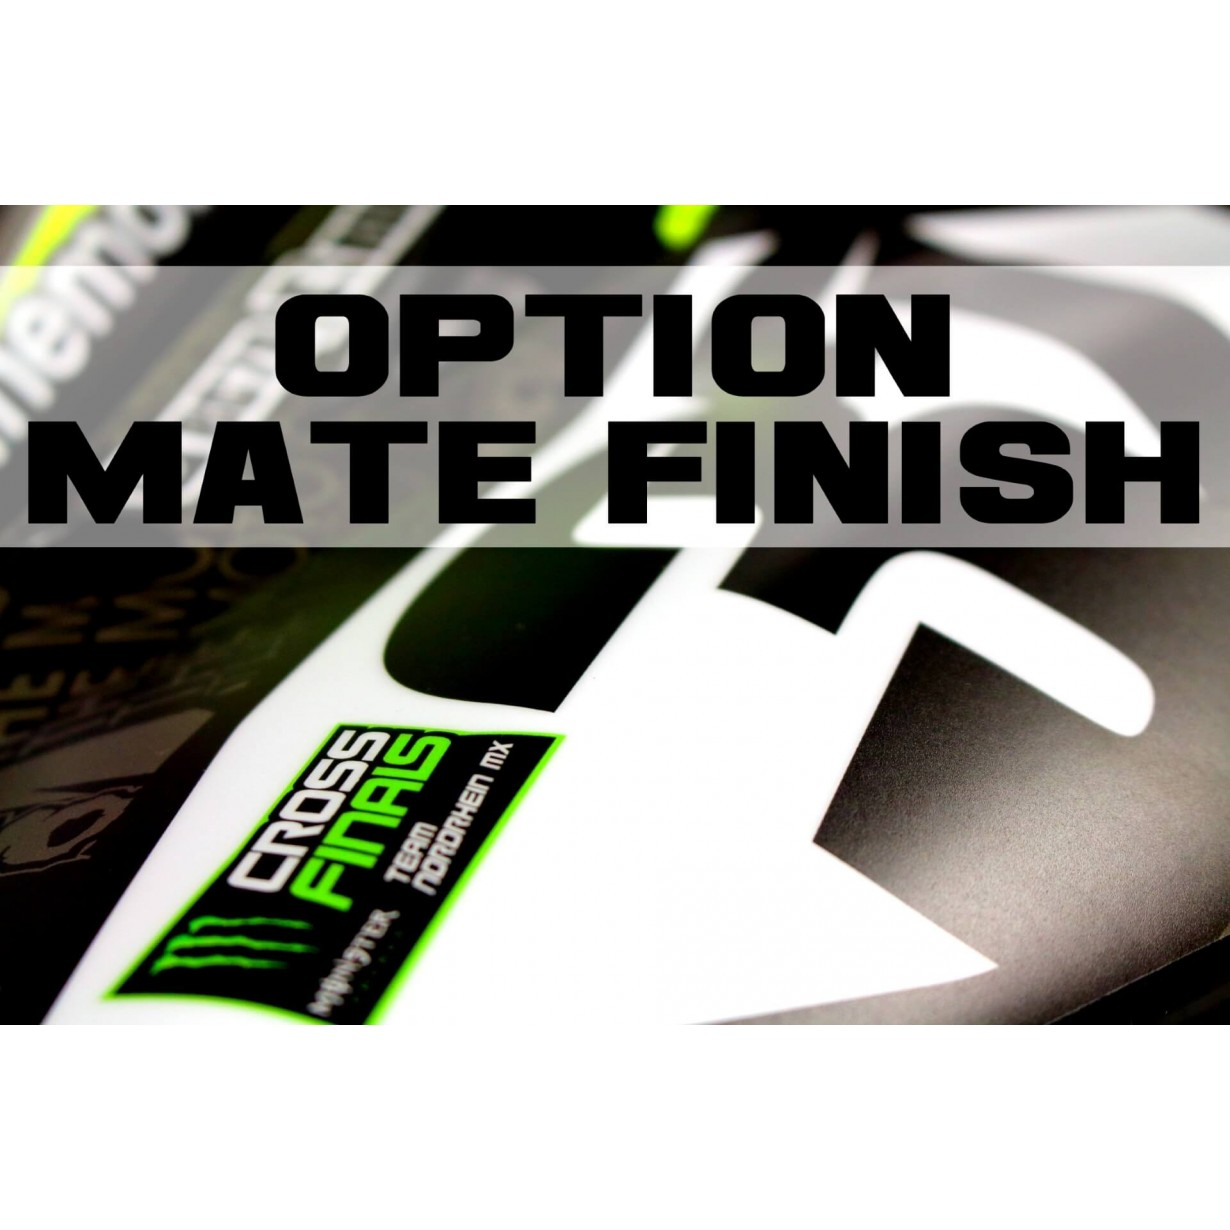 Option mate finish